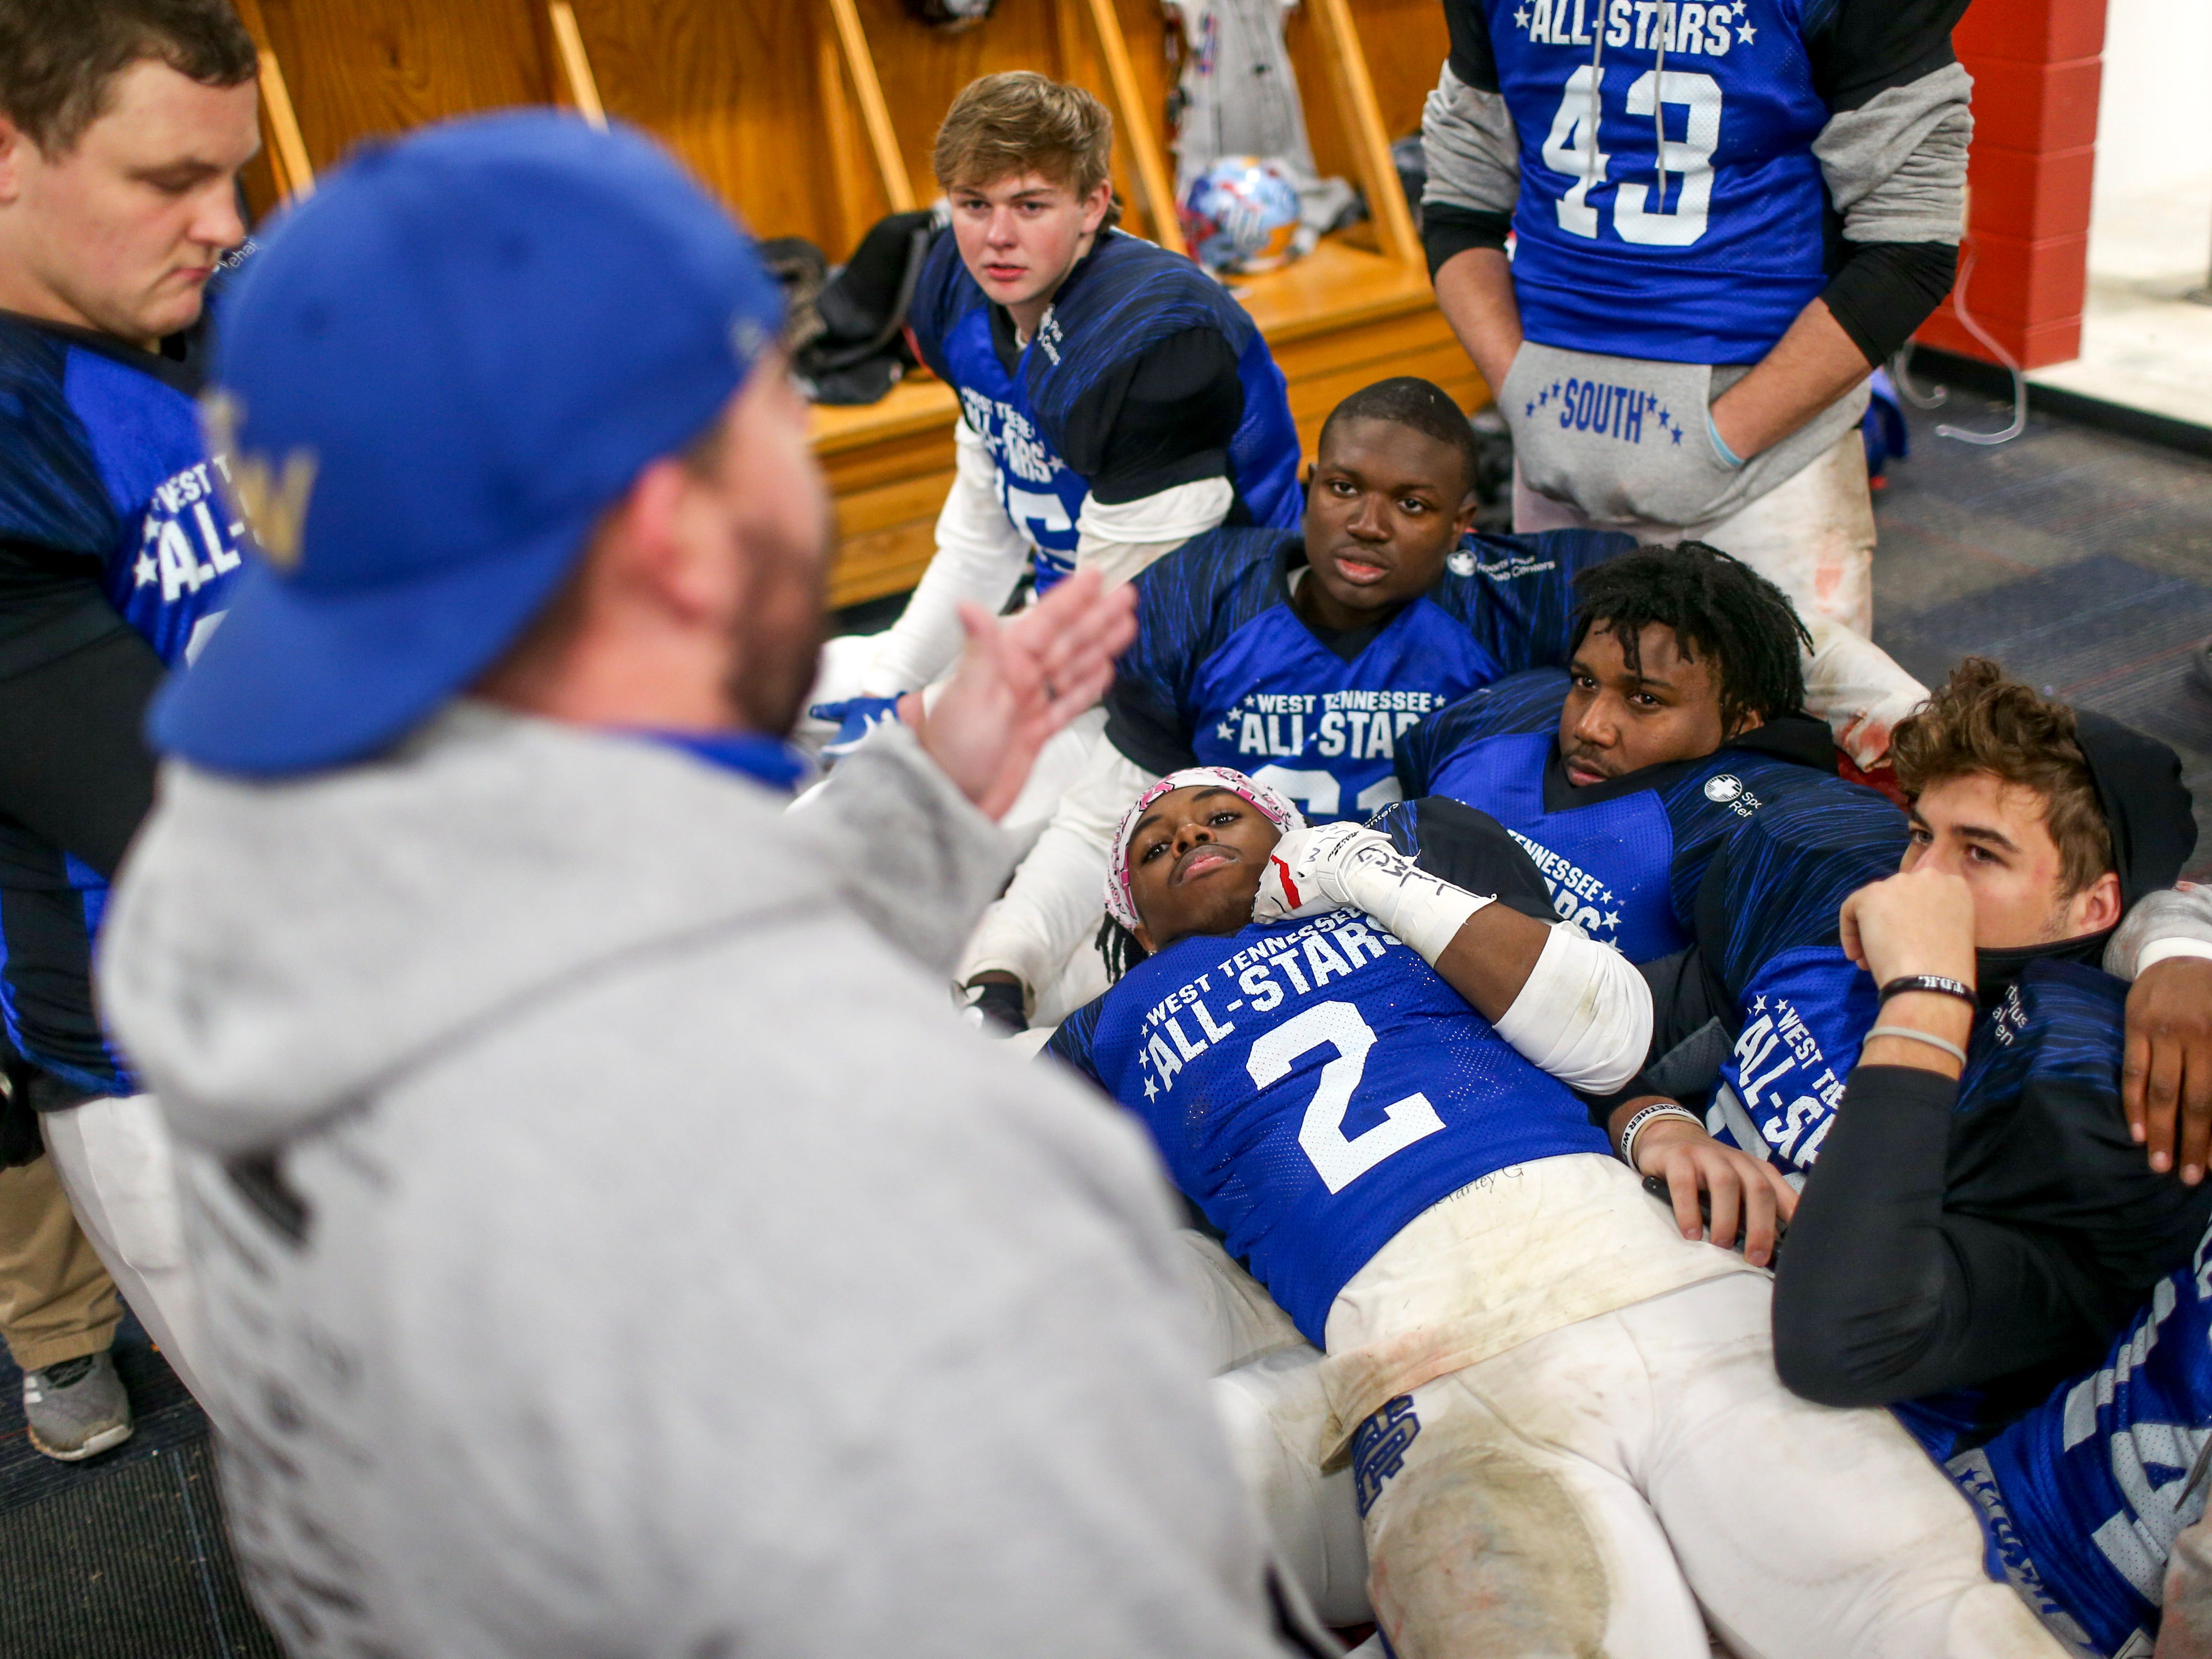 Peabody's Courtlen Wade (2) lays down across his teammates while listening to their coach speak to them at halftime during the West Tennessee All-Star football game at University School of Jackson in Jackson, Tenn., on Friday, Dec. 7, 2018.